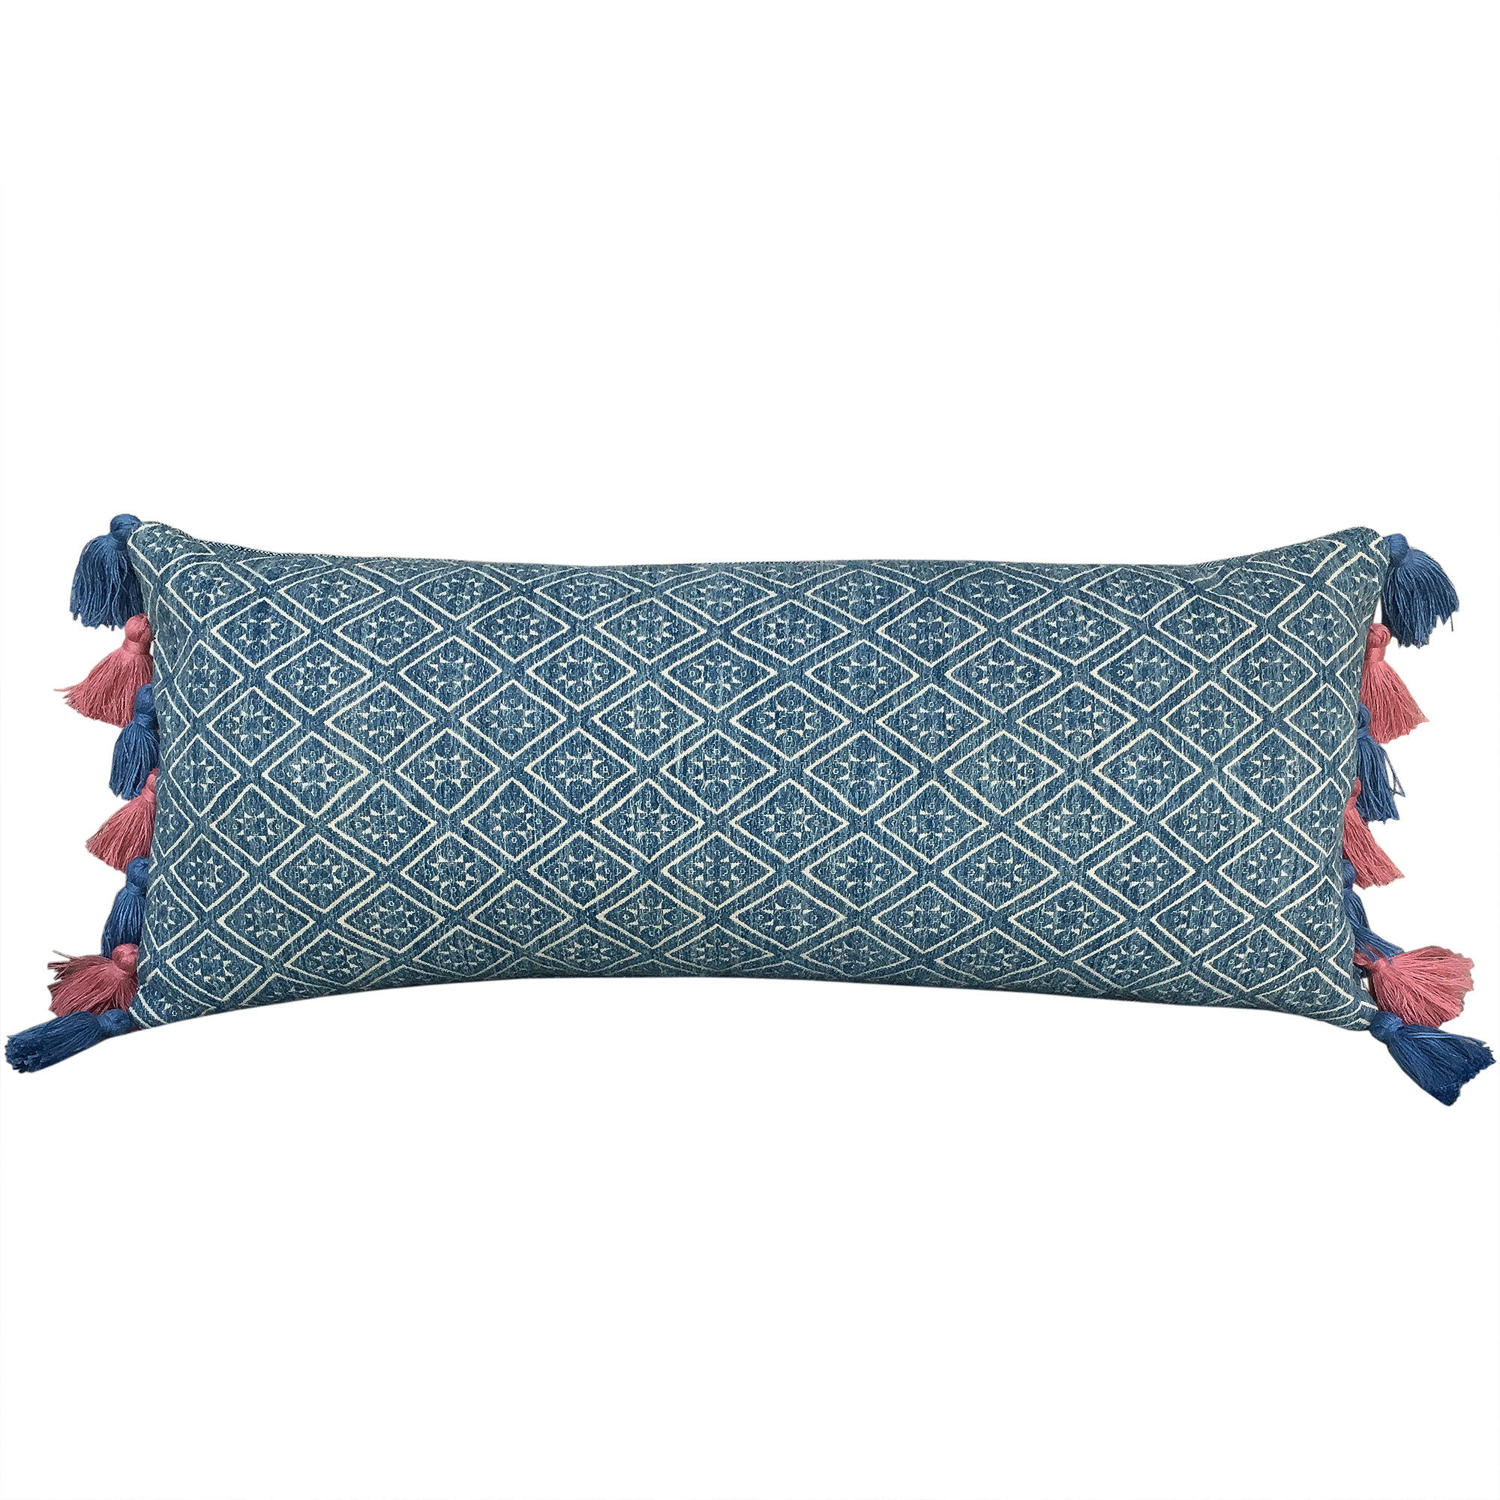 Zhuang Cushion with Pink & Blue Tassels